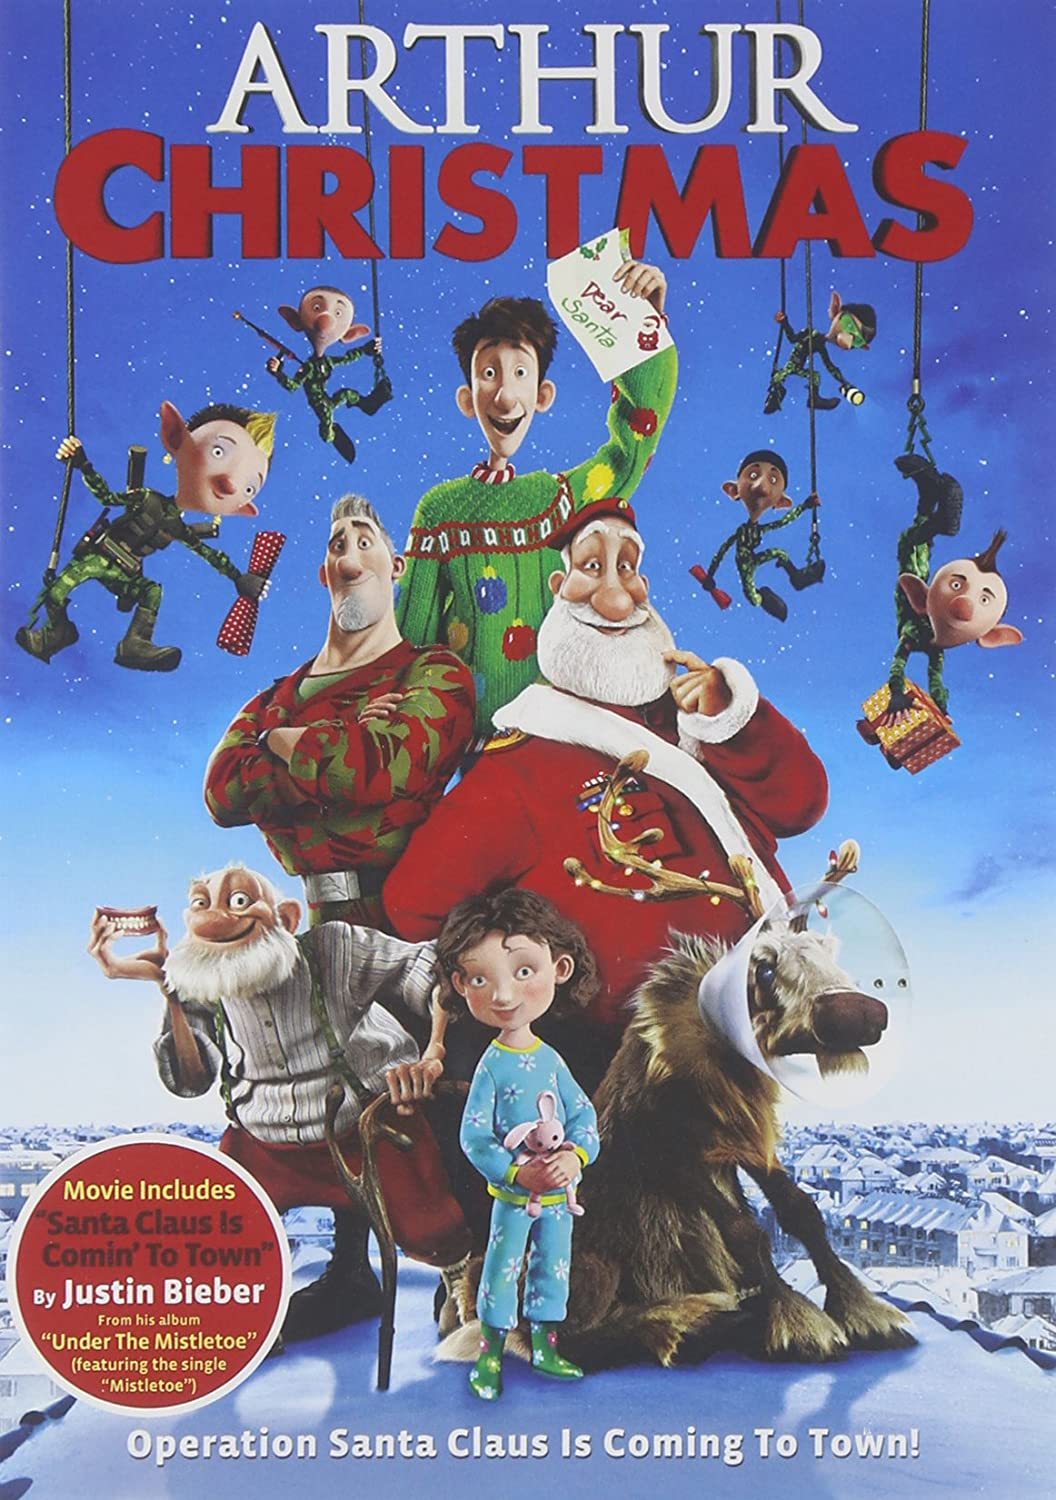 Arthur Christmas is top 10 Christmas movie for families. | The Dating Divas